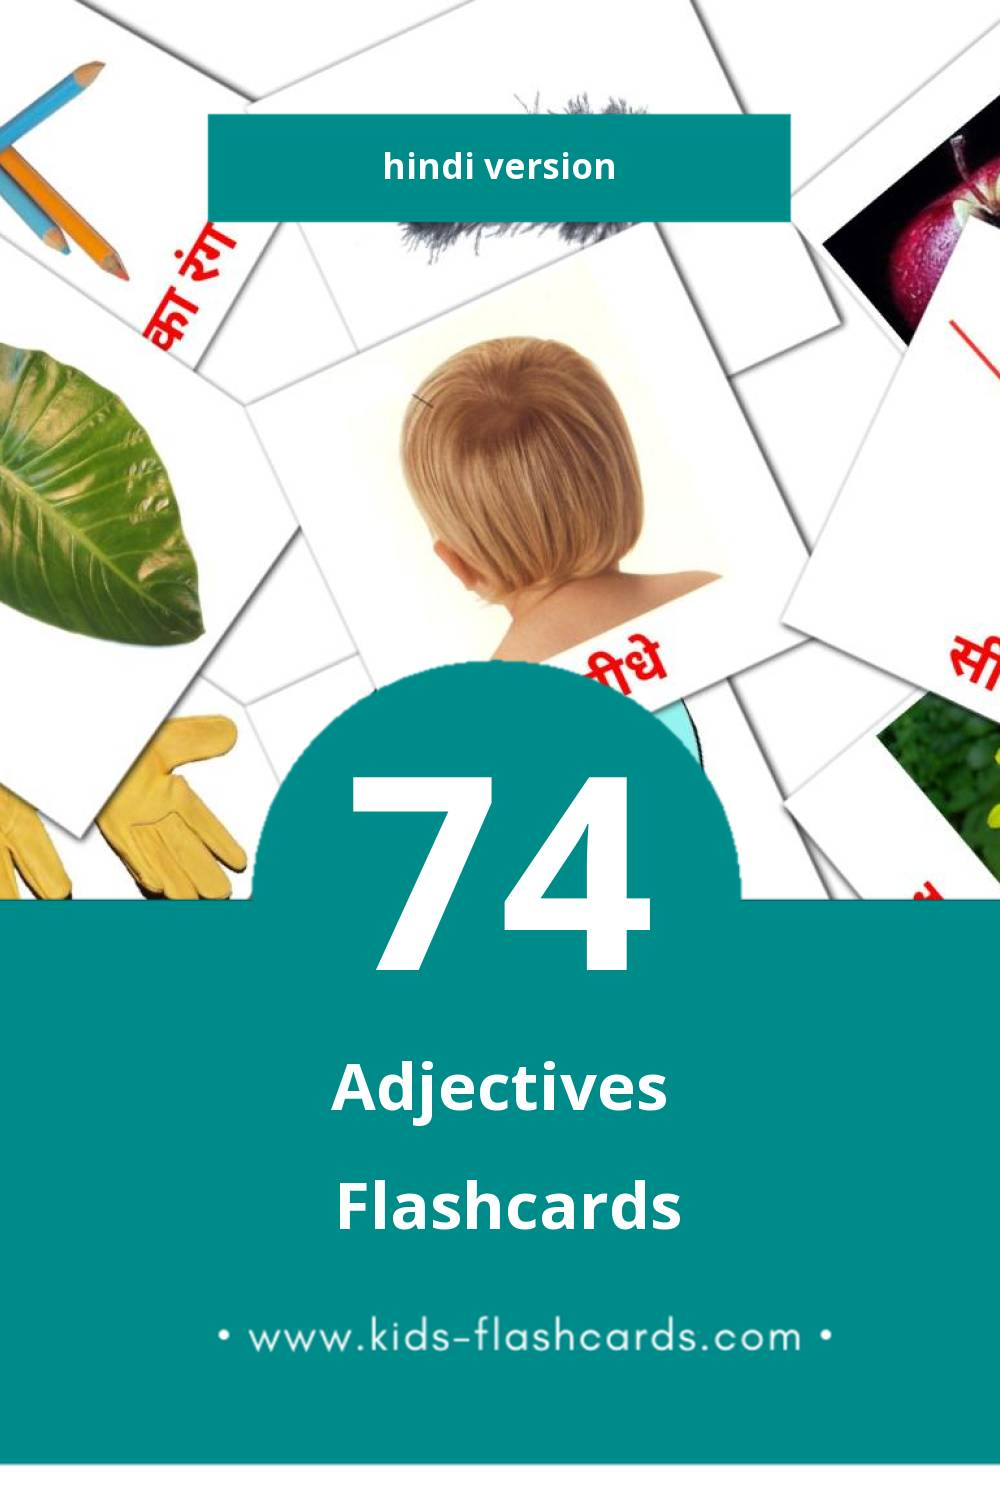 Visual विशेषण Flashcards for Toddlers (74 cards in Hindi)